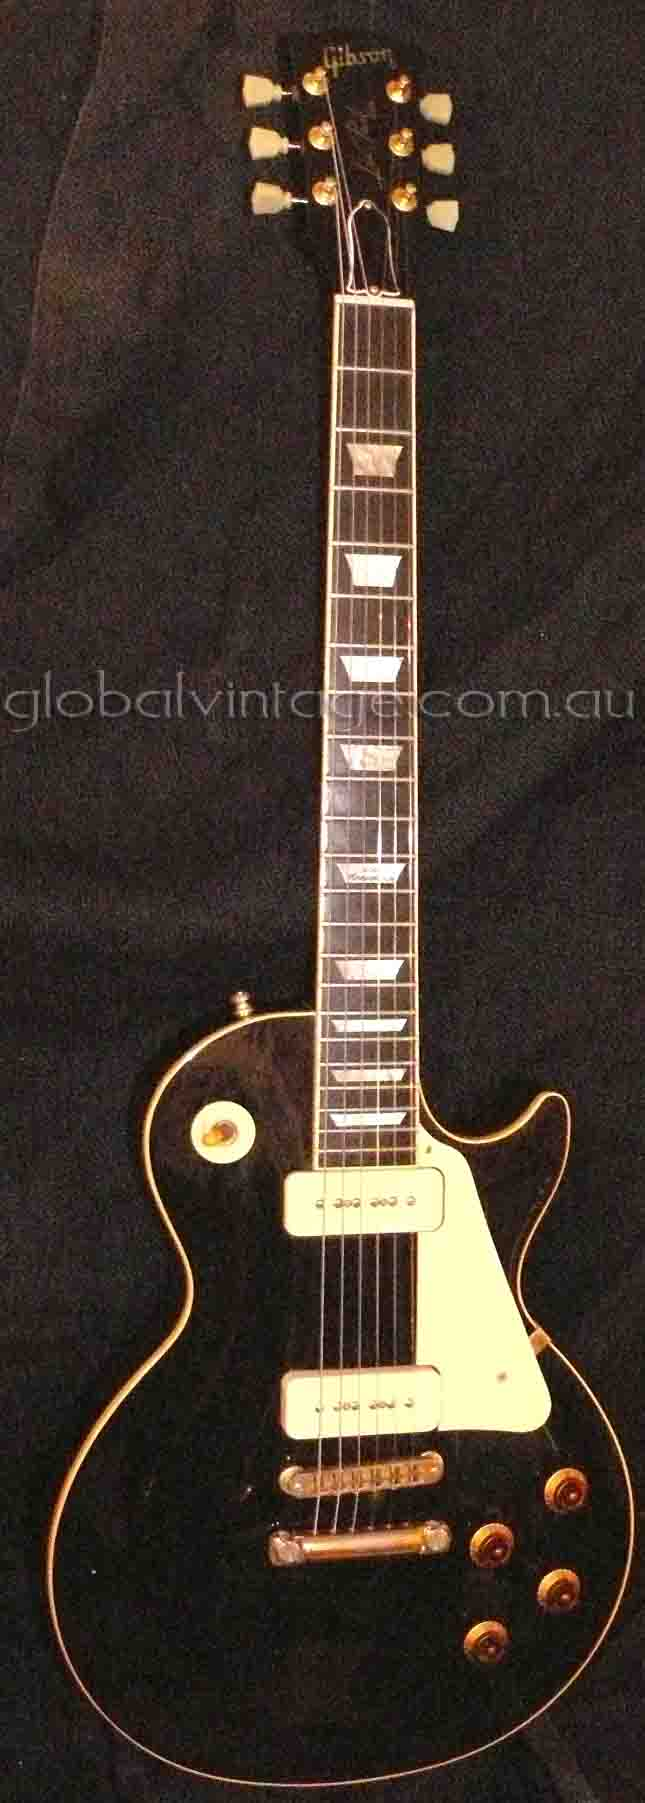 ~SOLD~Gibson USA `91 40th Anniversary Limited Edition Les Paul